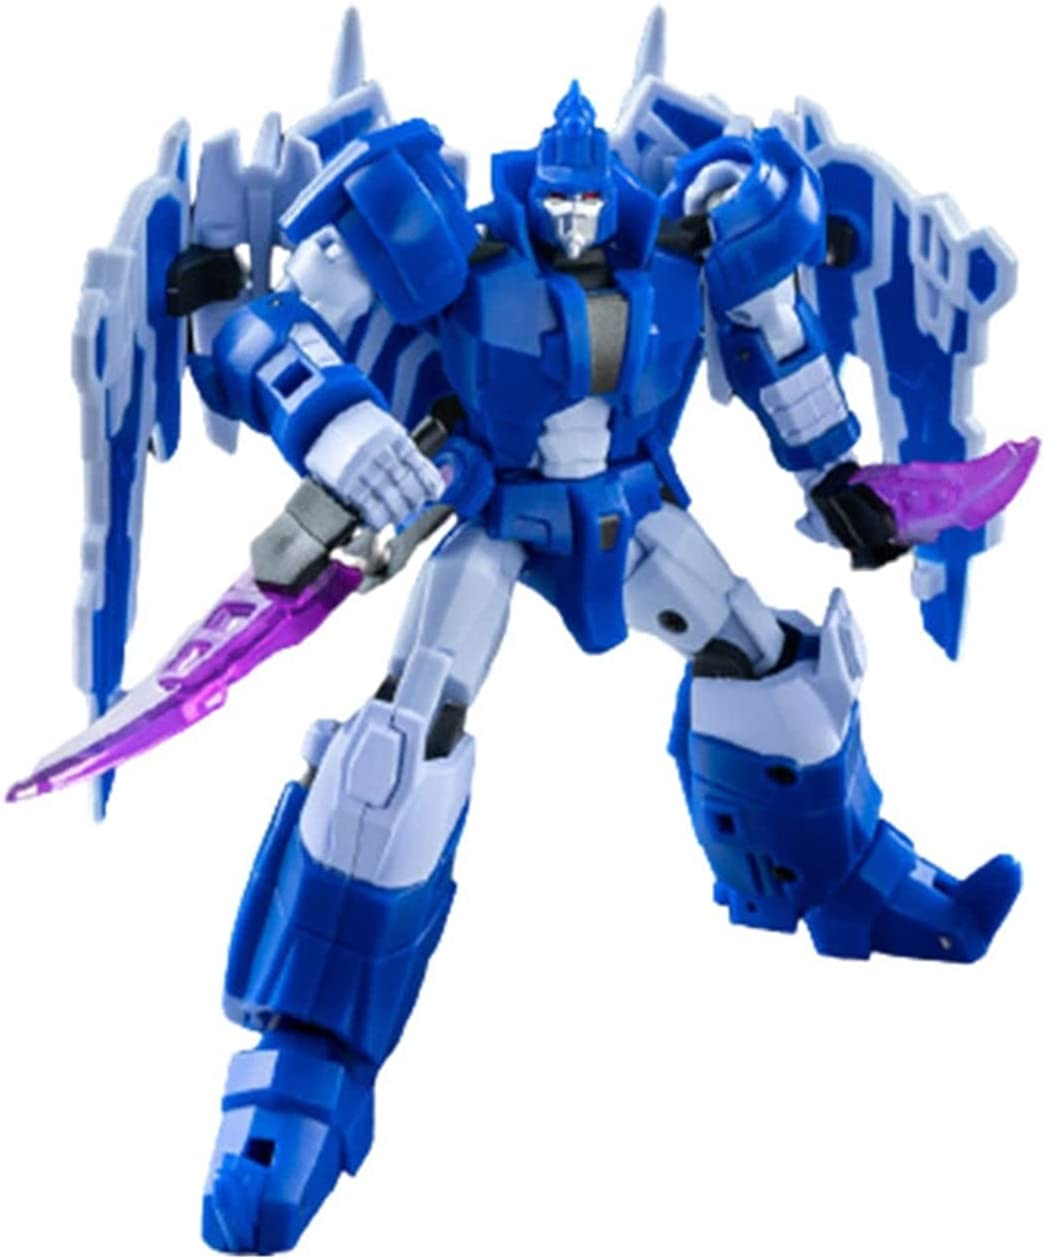 SEAL limited product CHIBO Transformer Toys NEW before selling ☆ Transformers for Cy Generations War